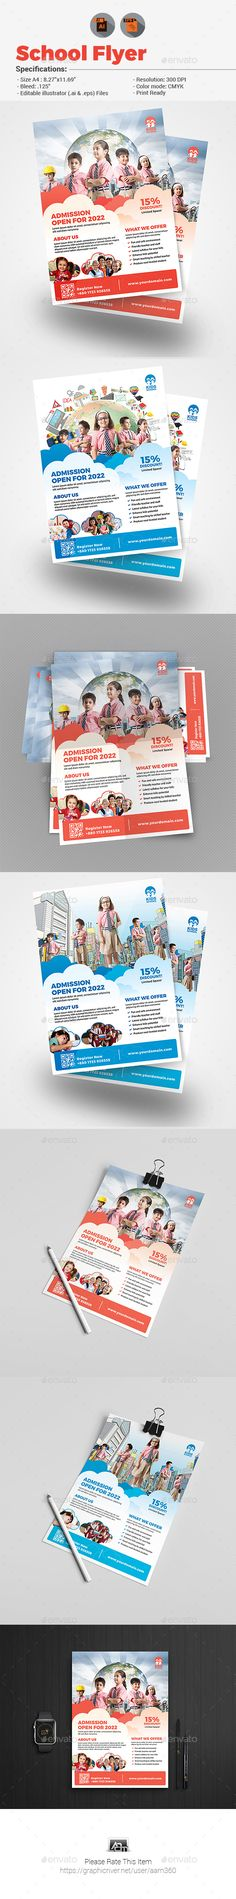 School Flyer — Vector EPS #school promotion #pre school • Available here → https://graphicriver.net/item/school-flyer/19634930?ref=pxcr